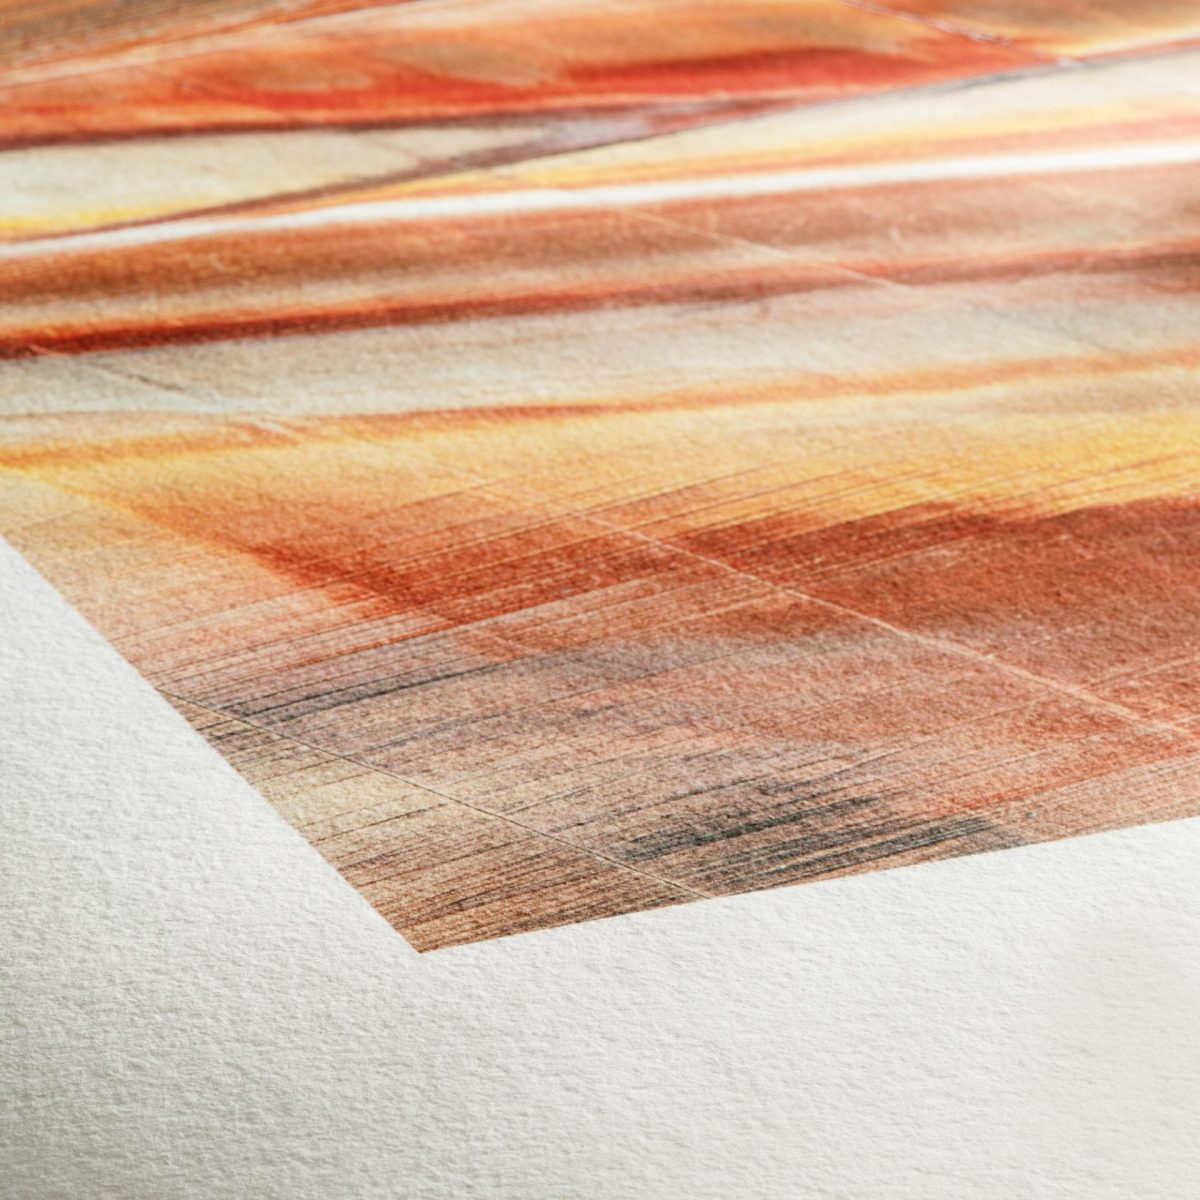 Textured Fine Art Papers